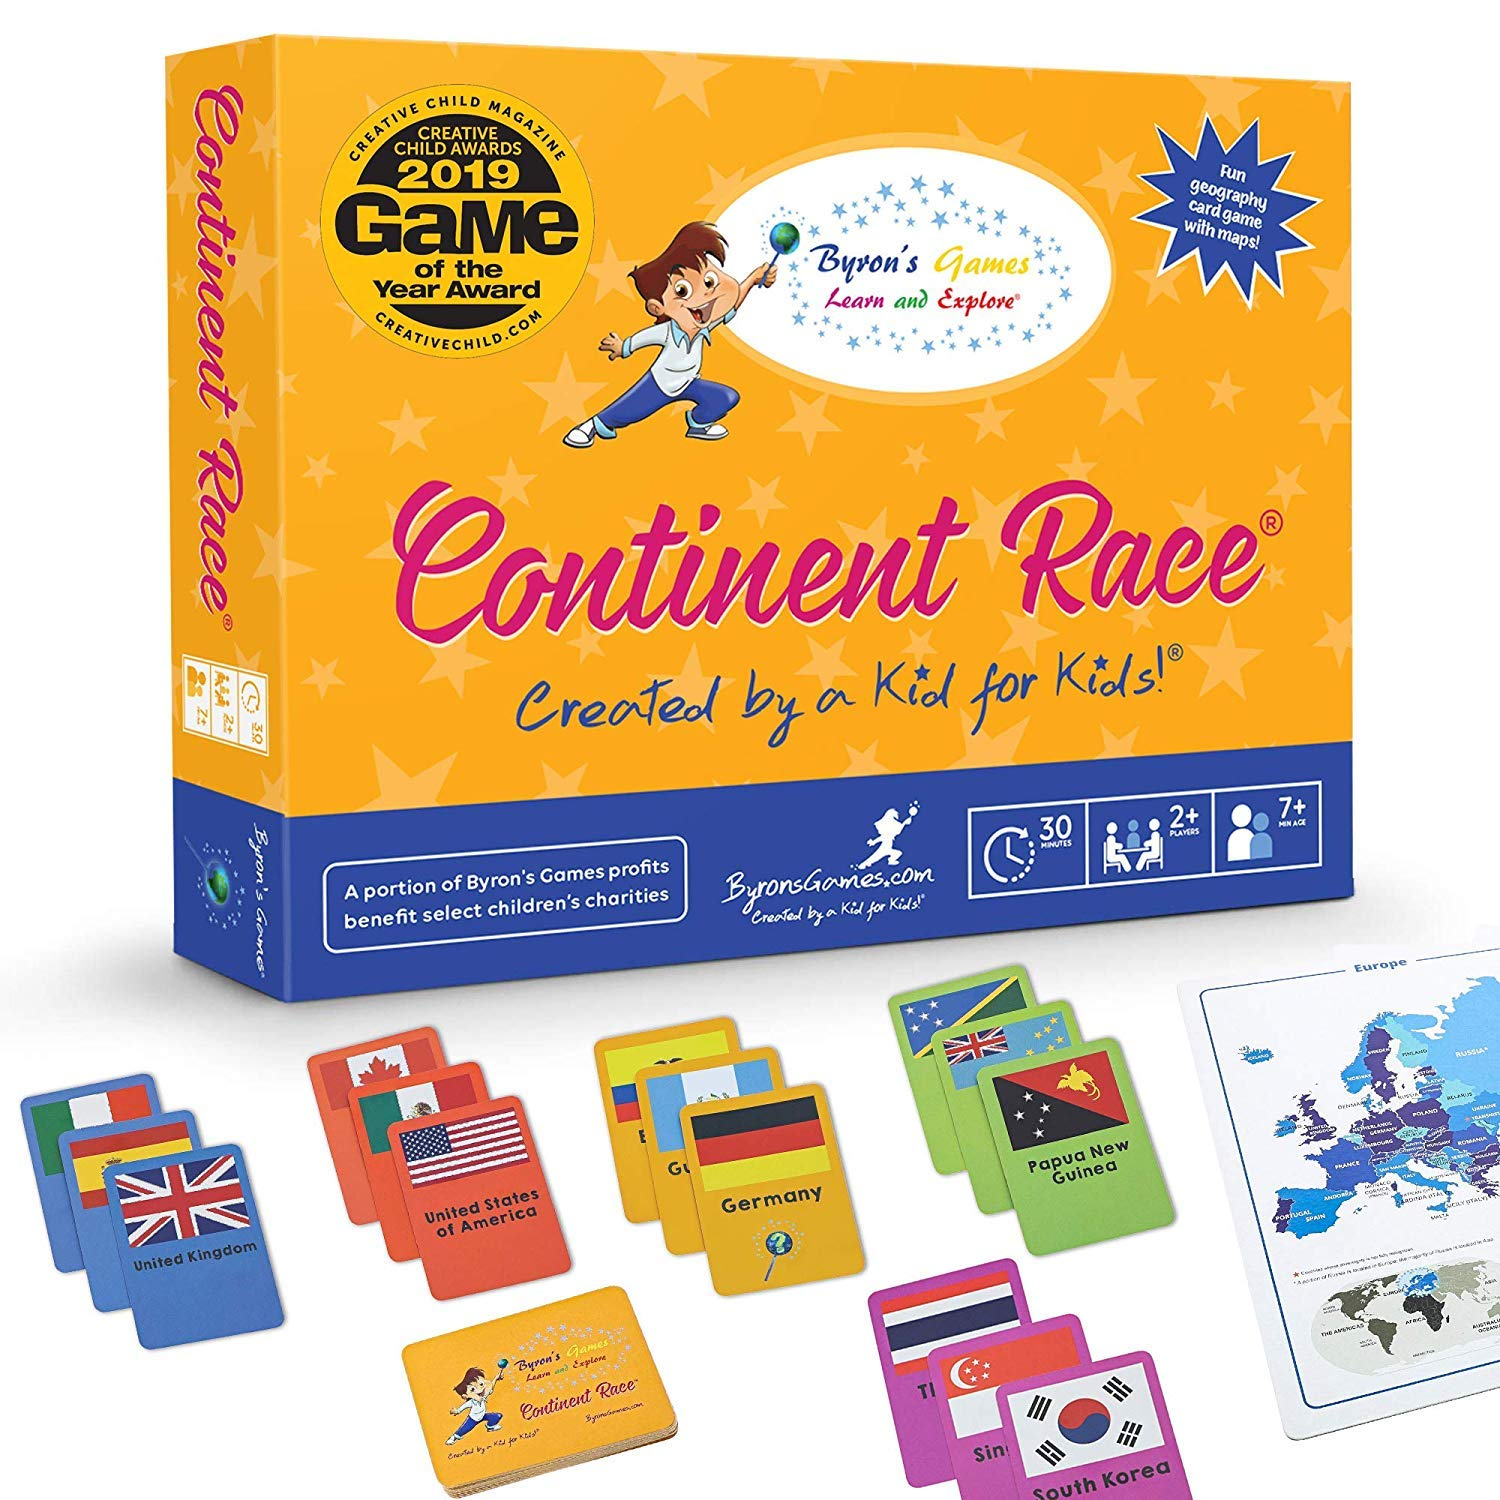 Continent Race World Map Board Games for Kids 7 and up | Award Winning Educational Geography Card Games for Families by Byron's Games